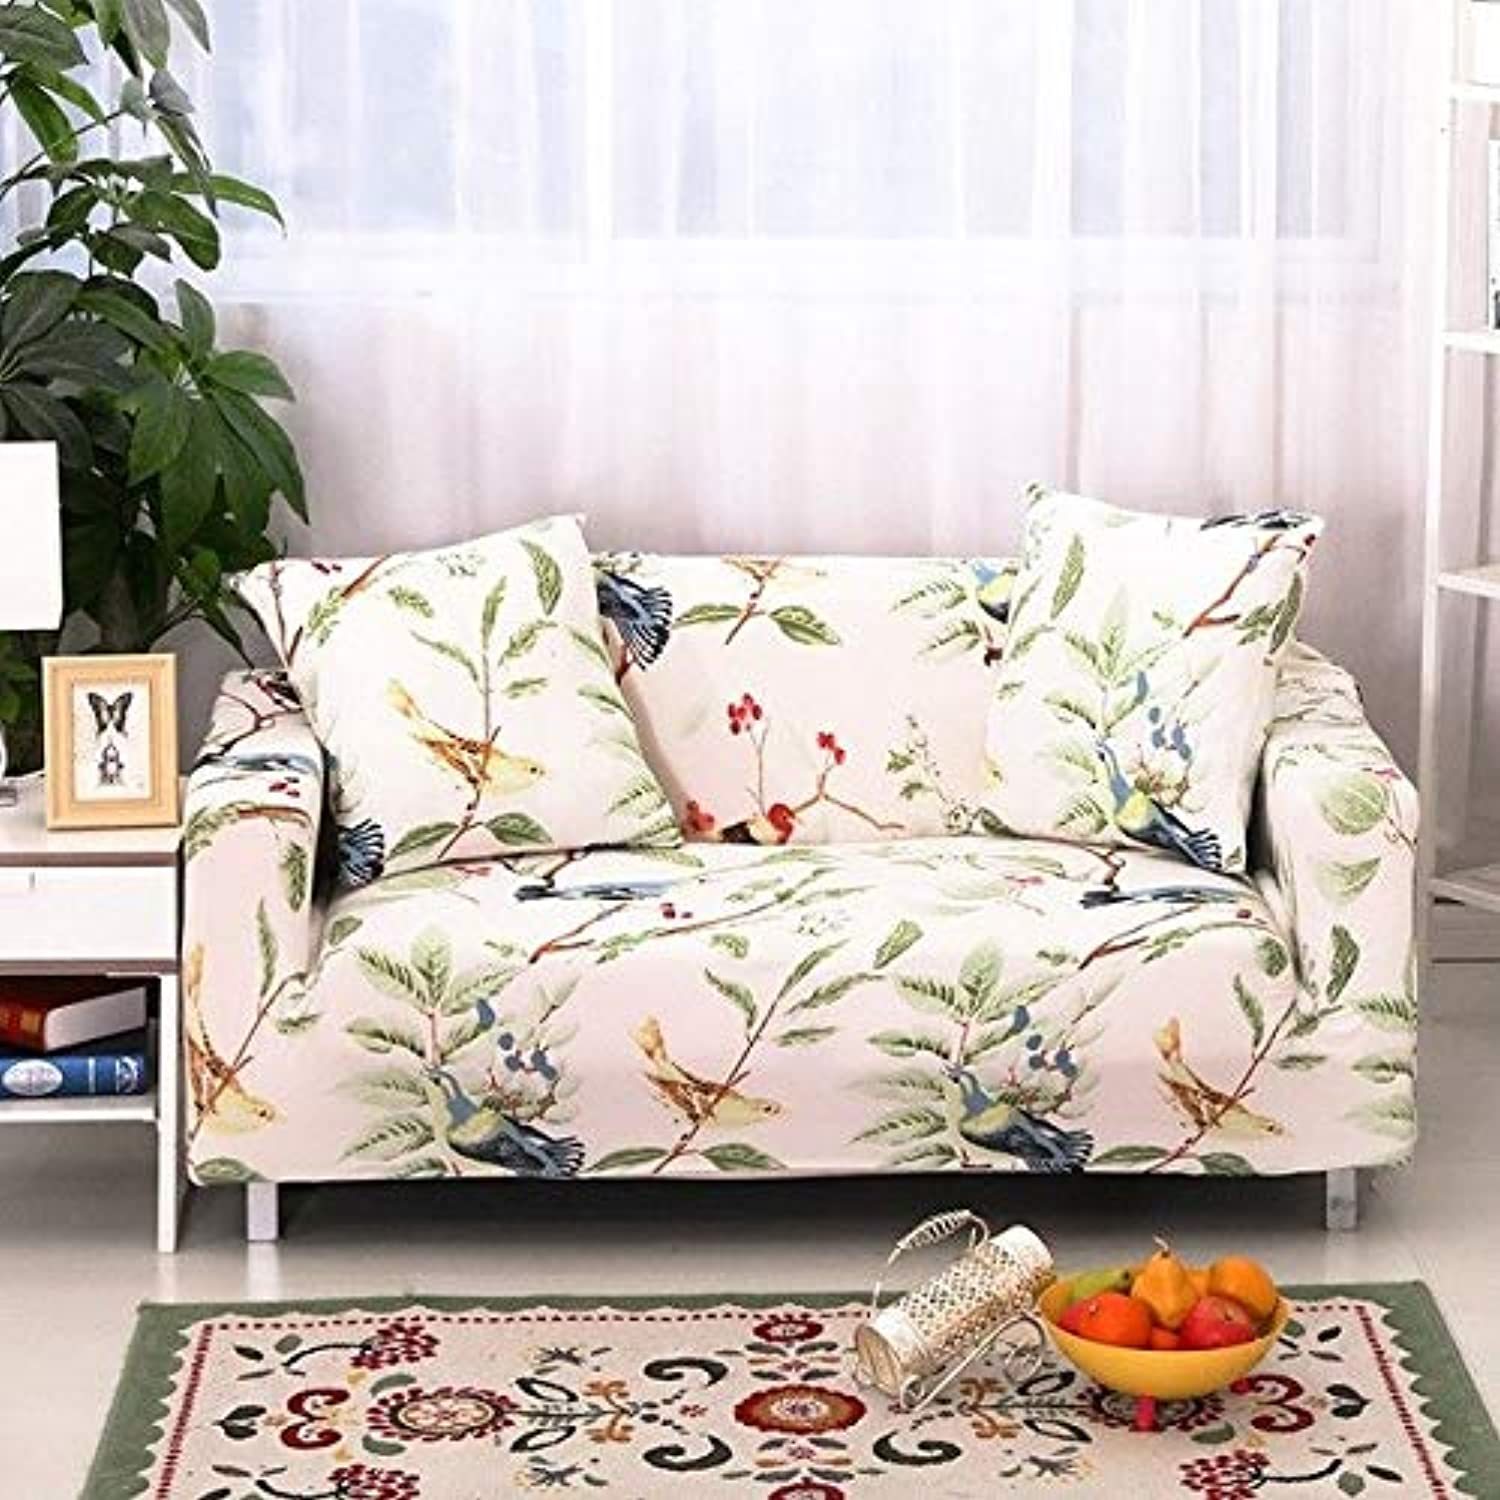 Farmerly Flower Slipcover Sofa Cover Tightly All-Inclusive Wrap Single Double Three Four-Seat Sofa Cover Elasticity Sofa Cover 1pcs   03, Single Seat